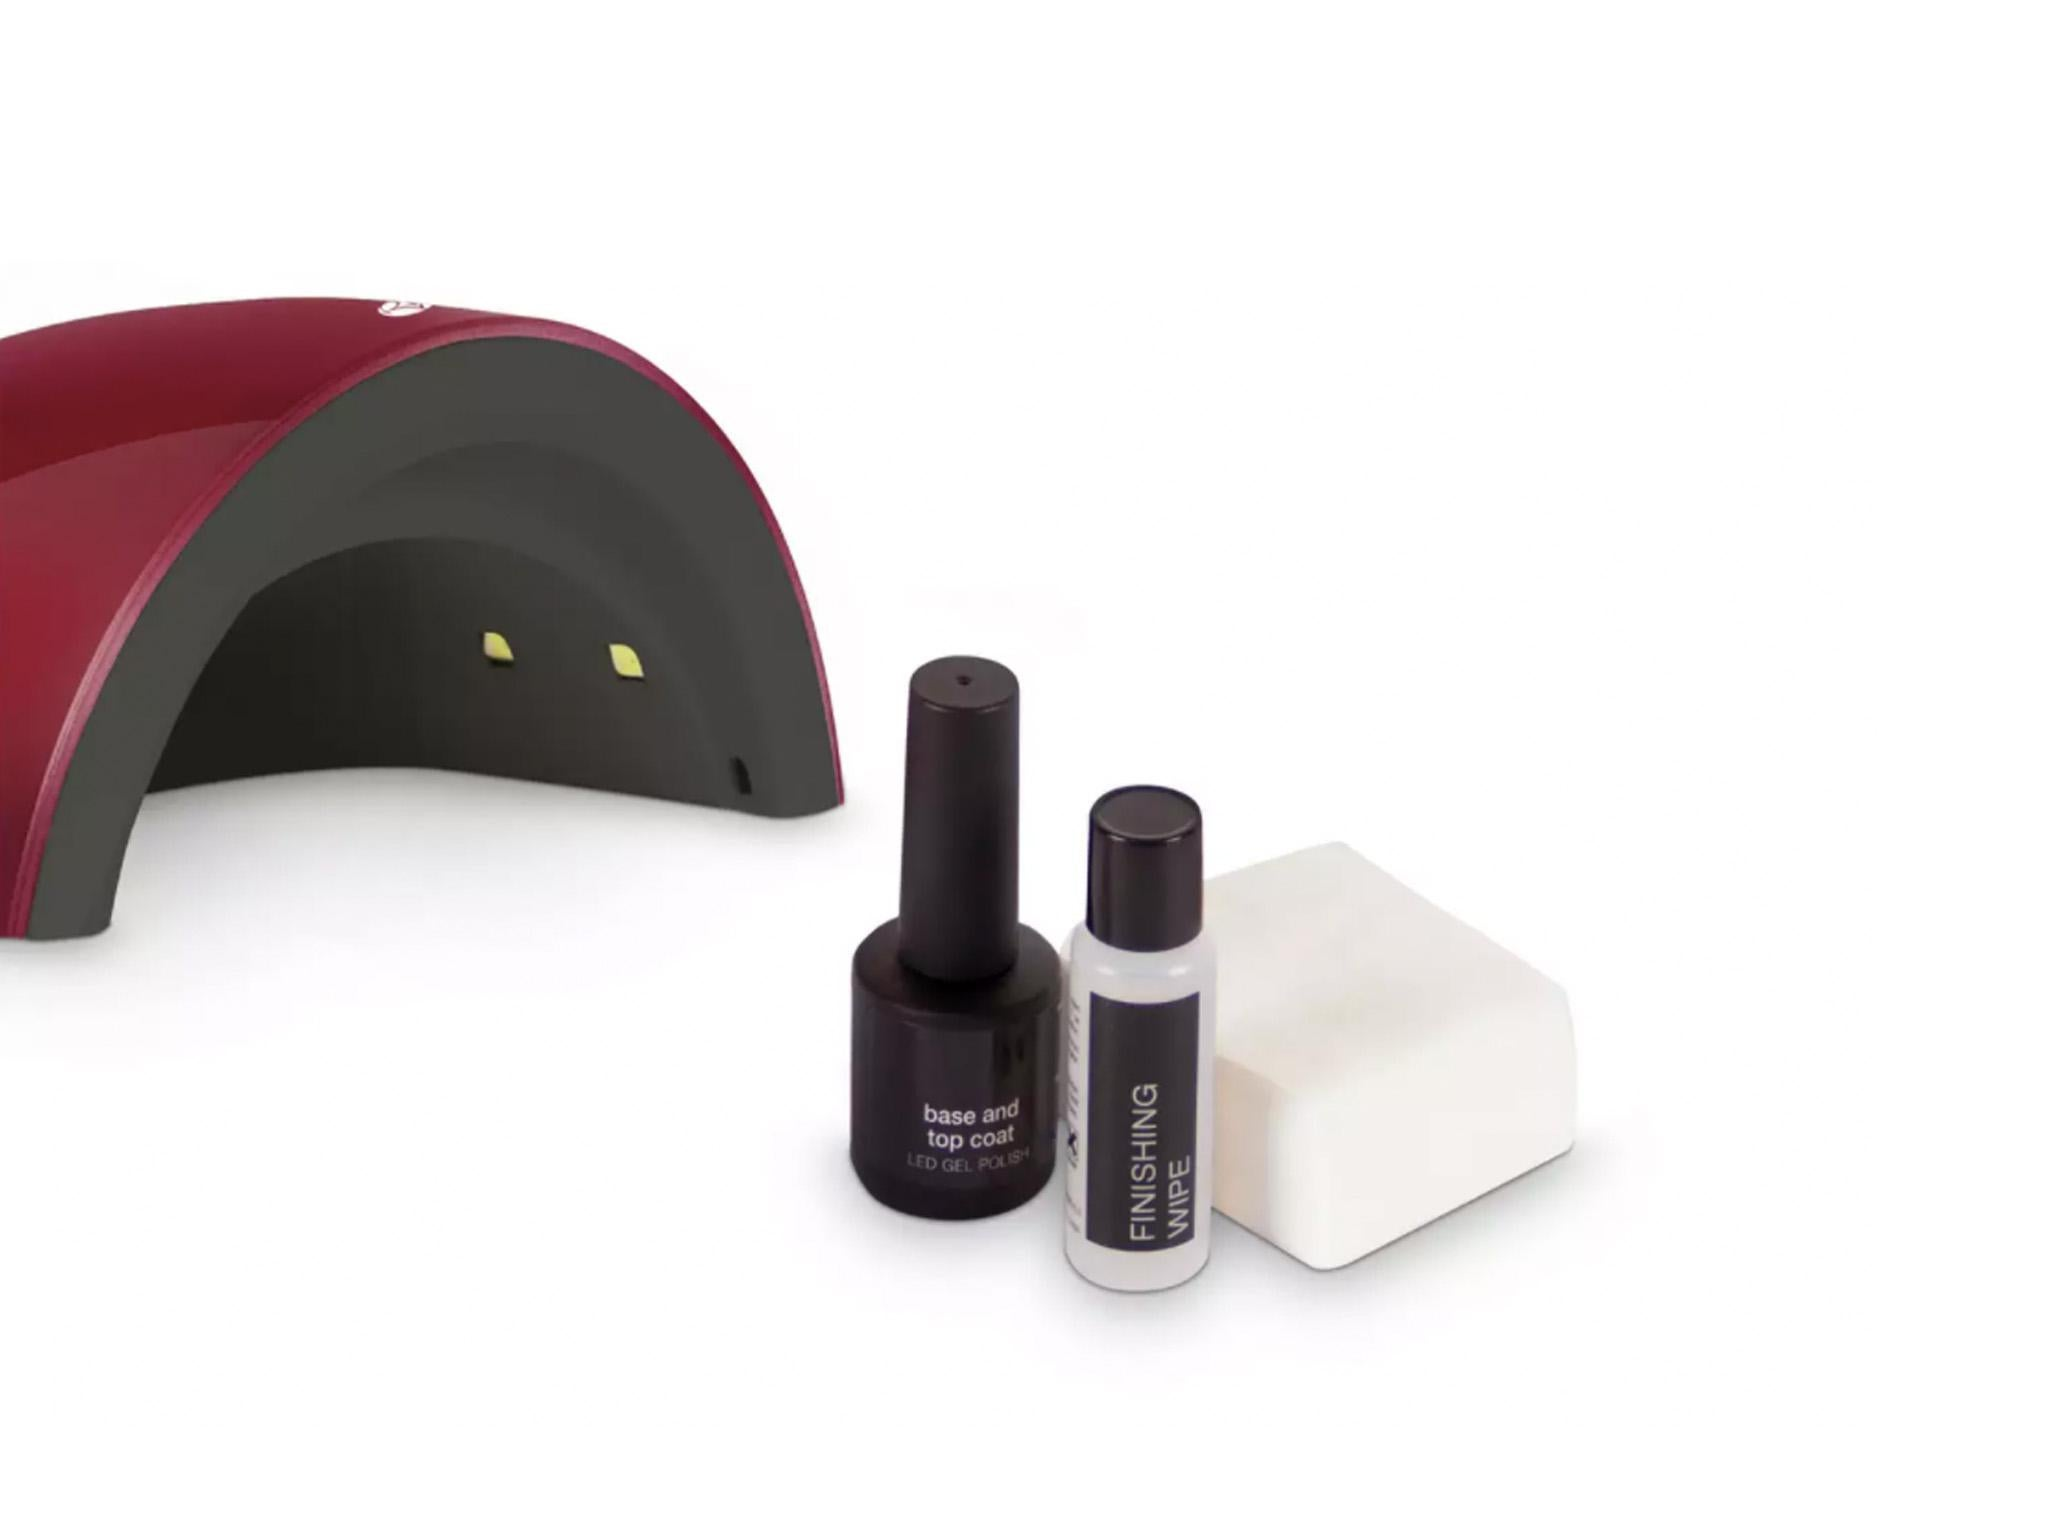 Best home gel nail kits 2020 for a DIY manicure that's salon